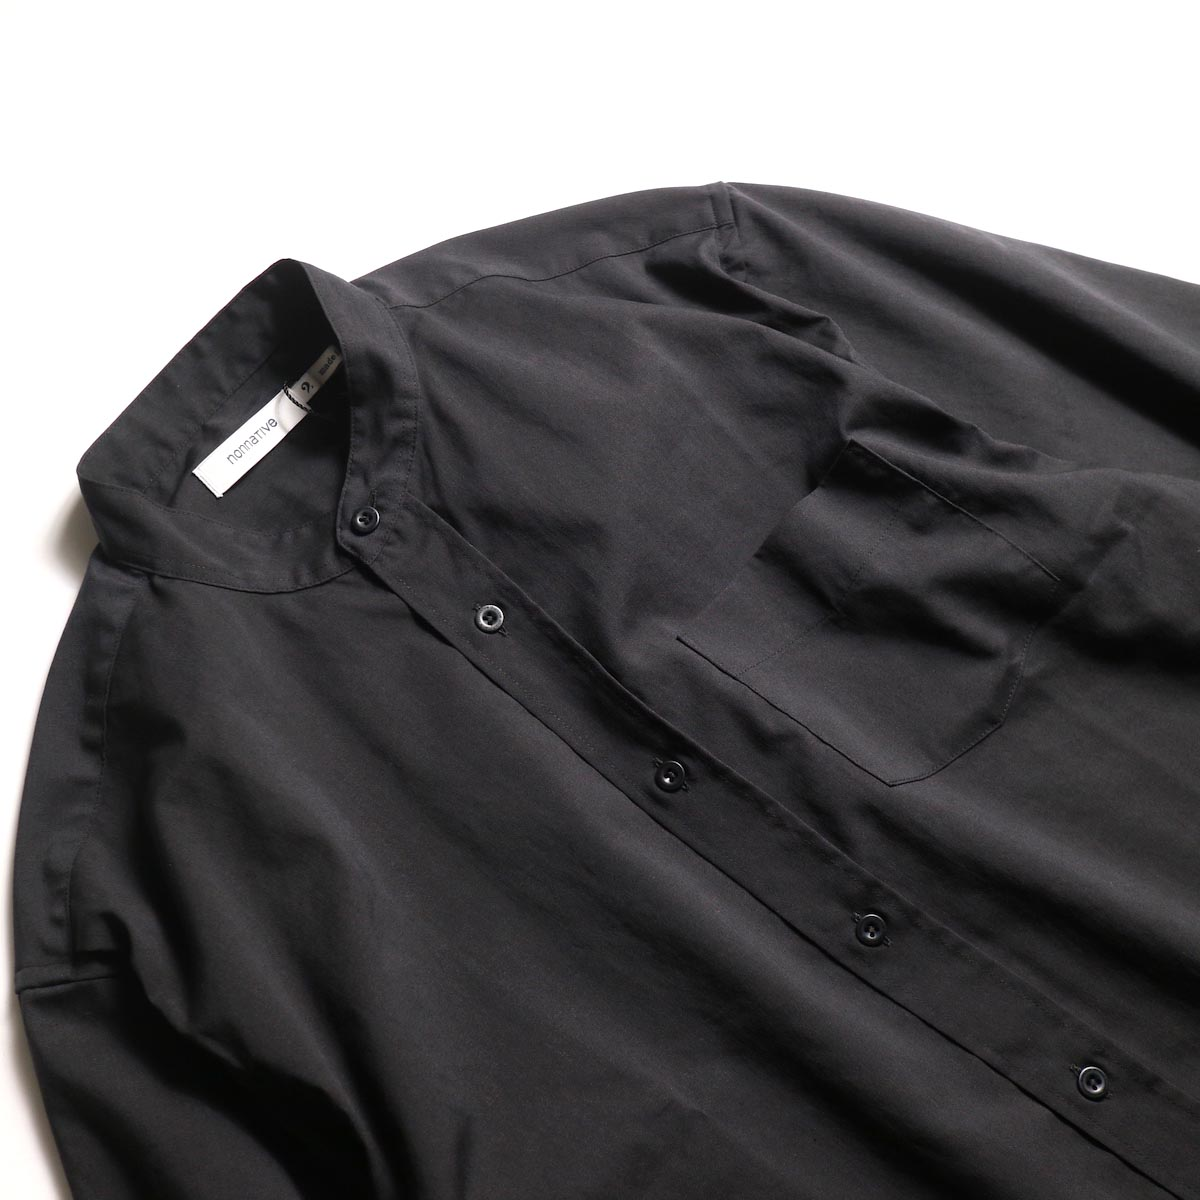 nonnative / OFFICER SHIRT Q/S RELAXED FIT P/L WEATHER STRETCH COOLMAX® (Black)バンドカラー